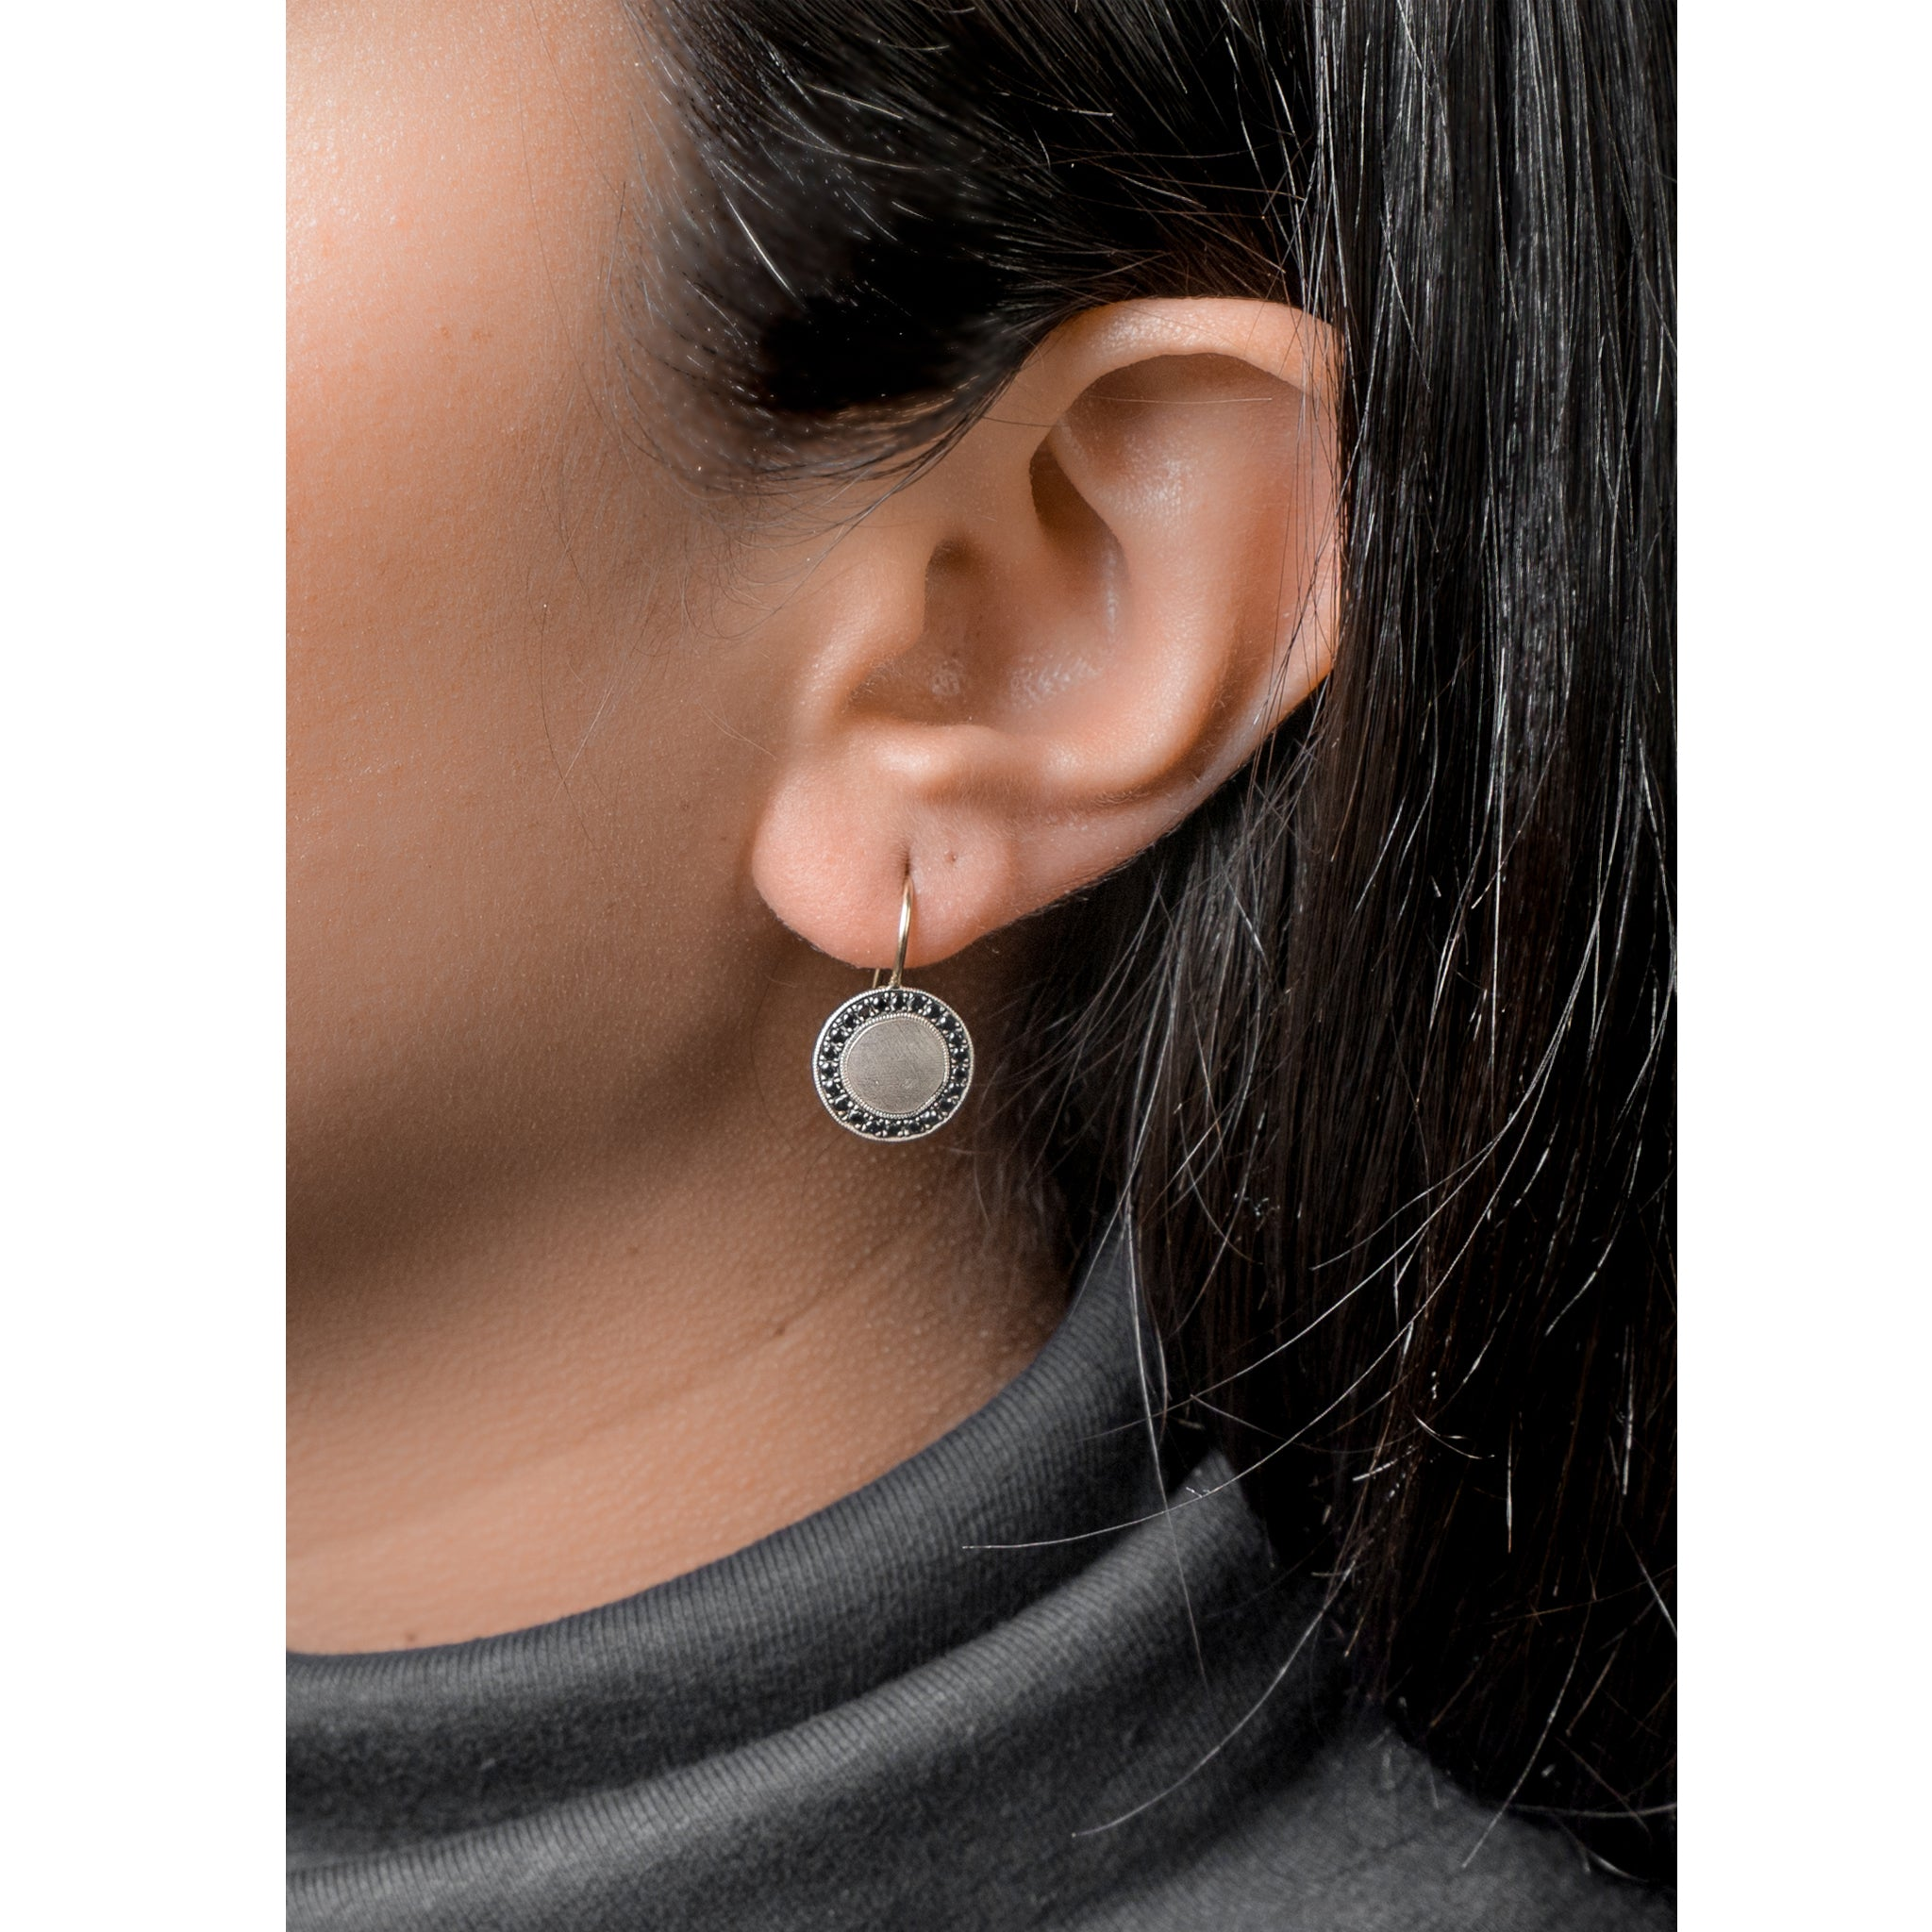 Ario Earrings